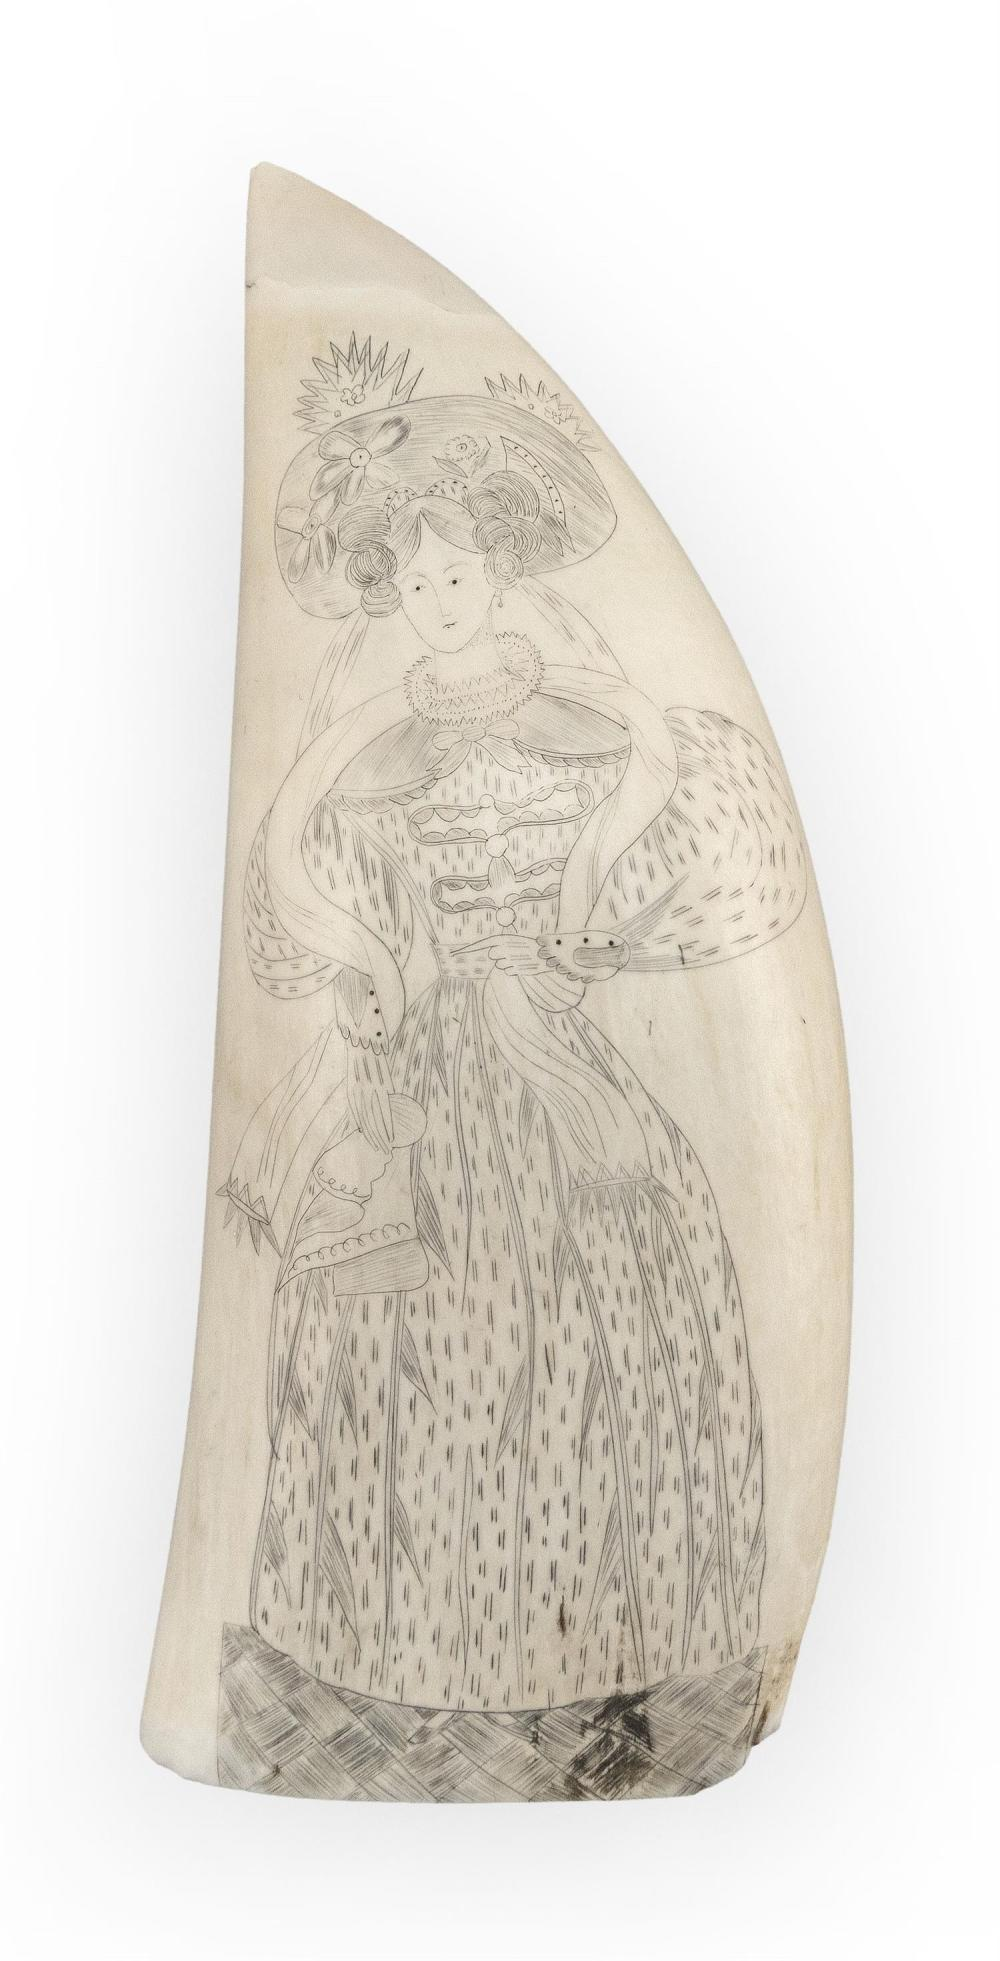 SCRIMSHAW WHALE'S TOOTH ATTRIBUTED TO WILLIAM SIZER Obverse depicts a full-length portrait of a woman in Renaissance-like attire, in..